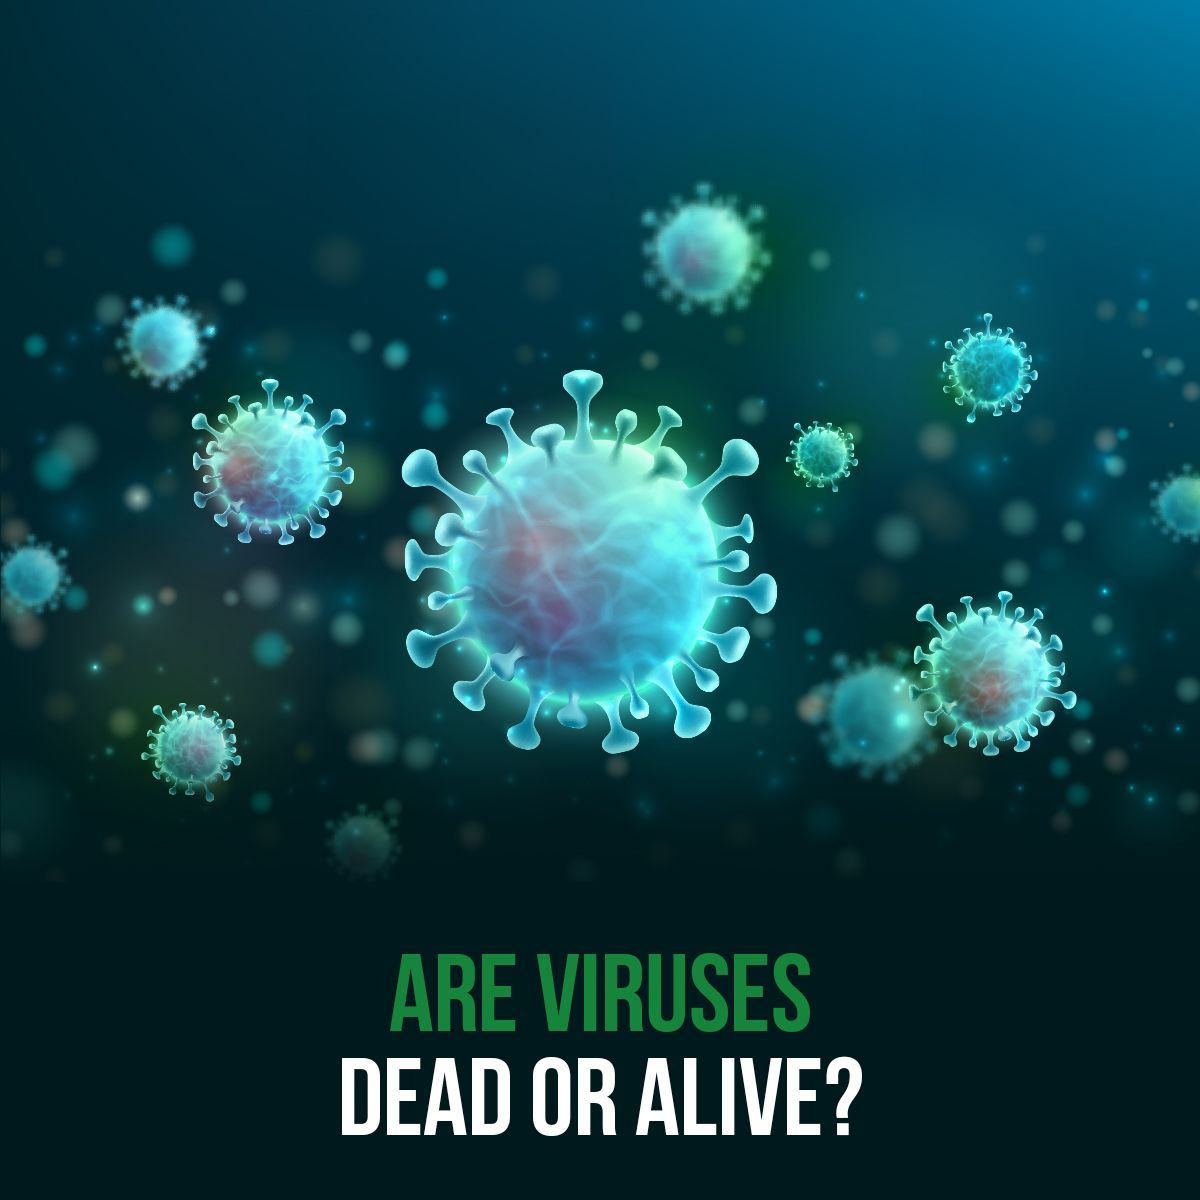 Are Viruses Dead or Alive?